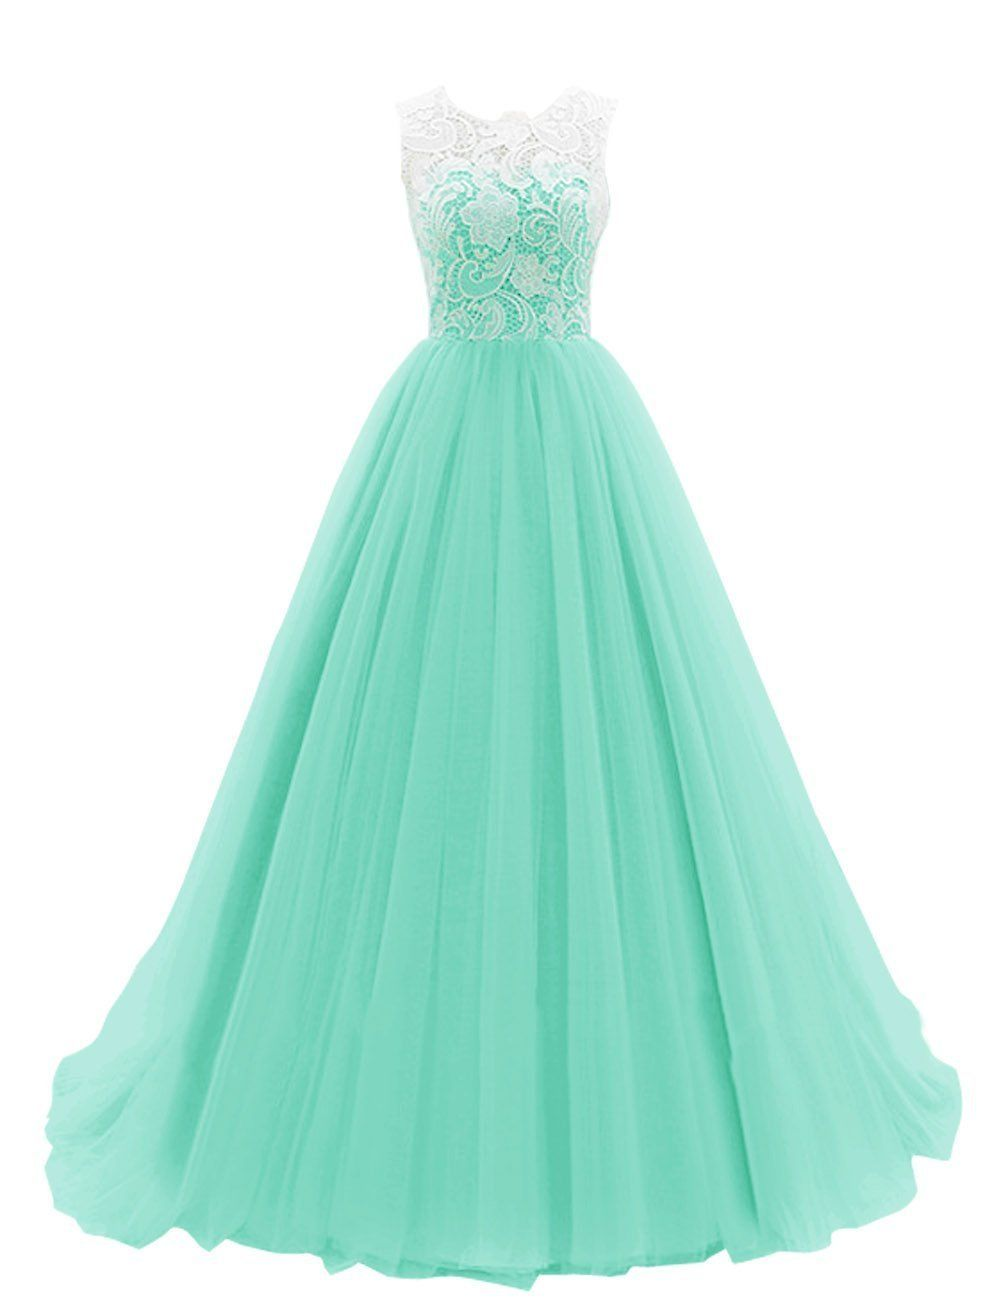 Coco Bridal Women\'s Long Tulle Prom Dress Dance Gown with Lace ...